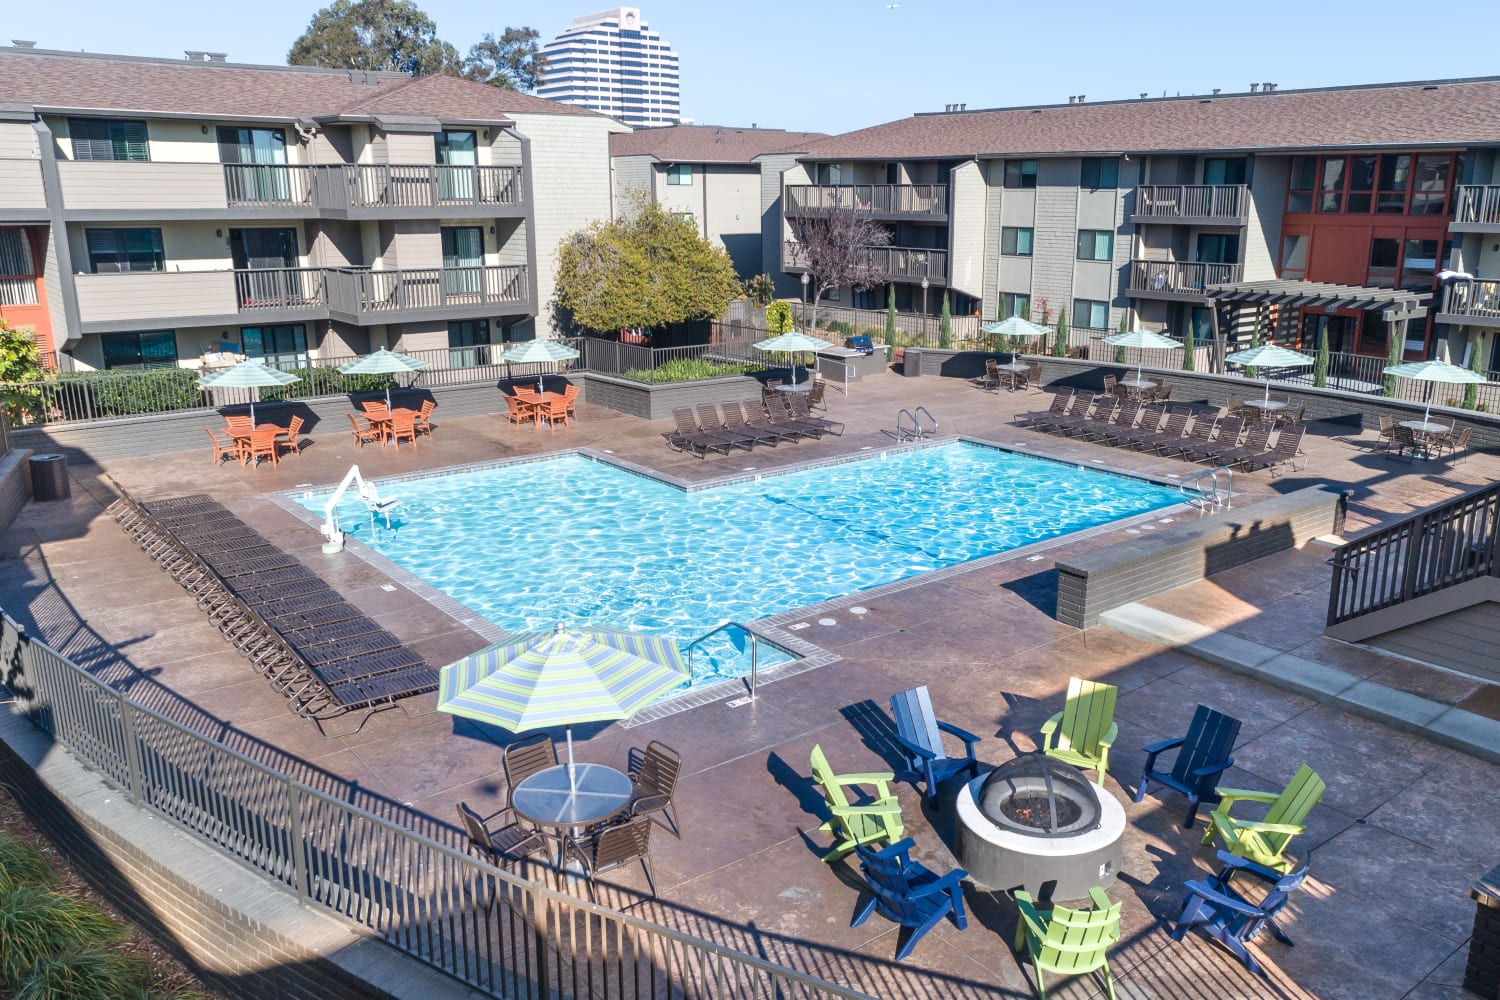 Harbor Cove Apartments offer a swimming pool in Foster City, California